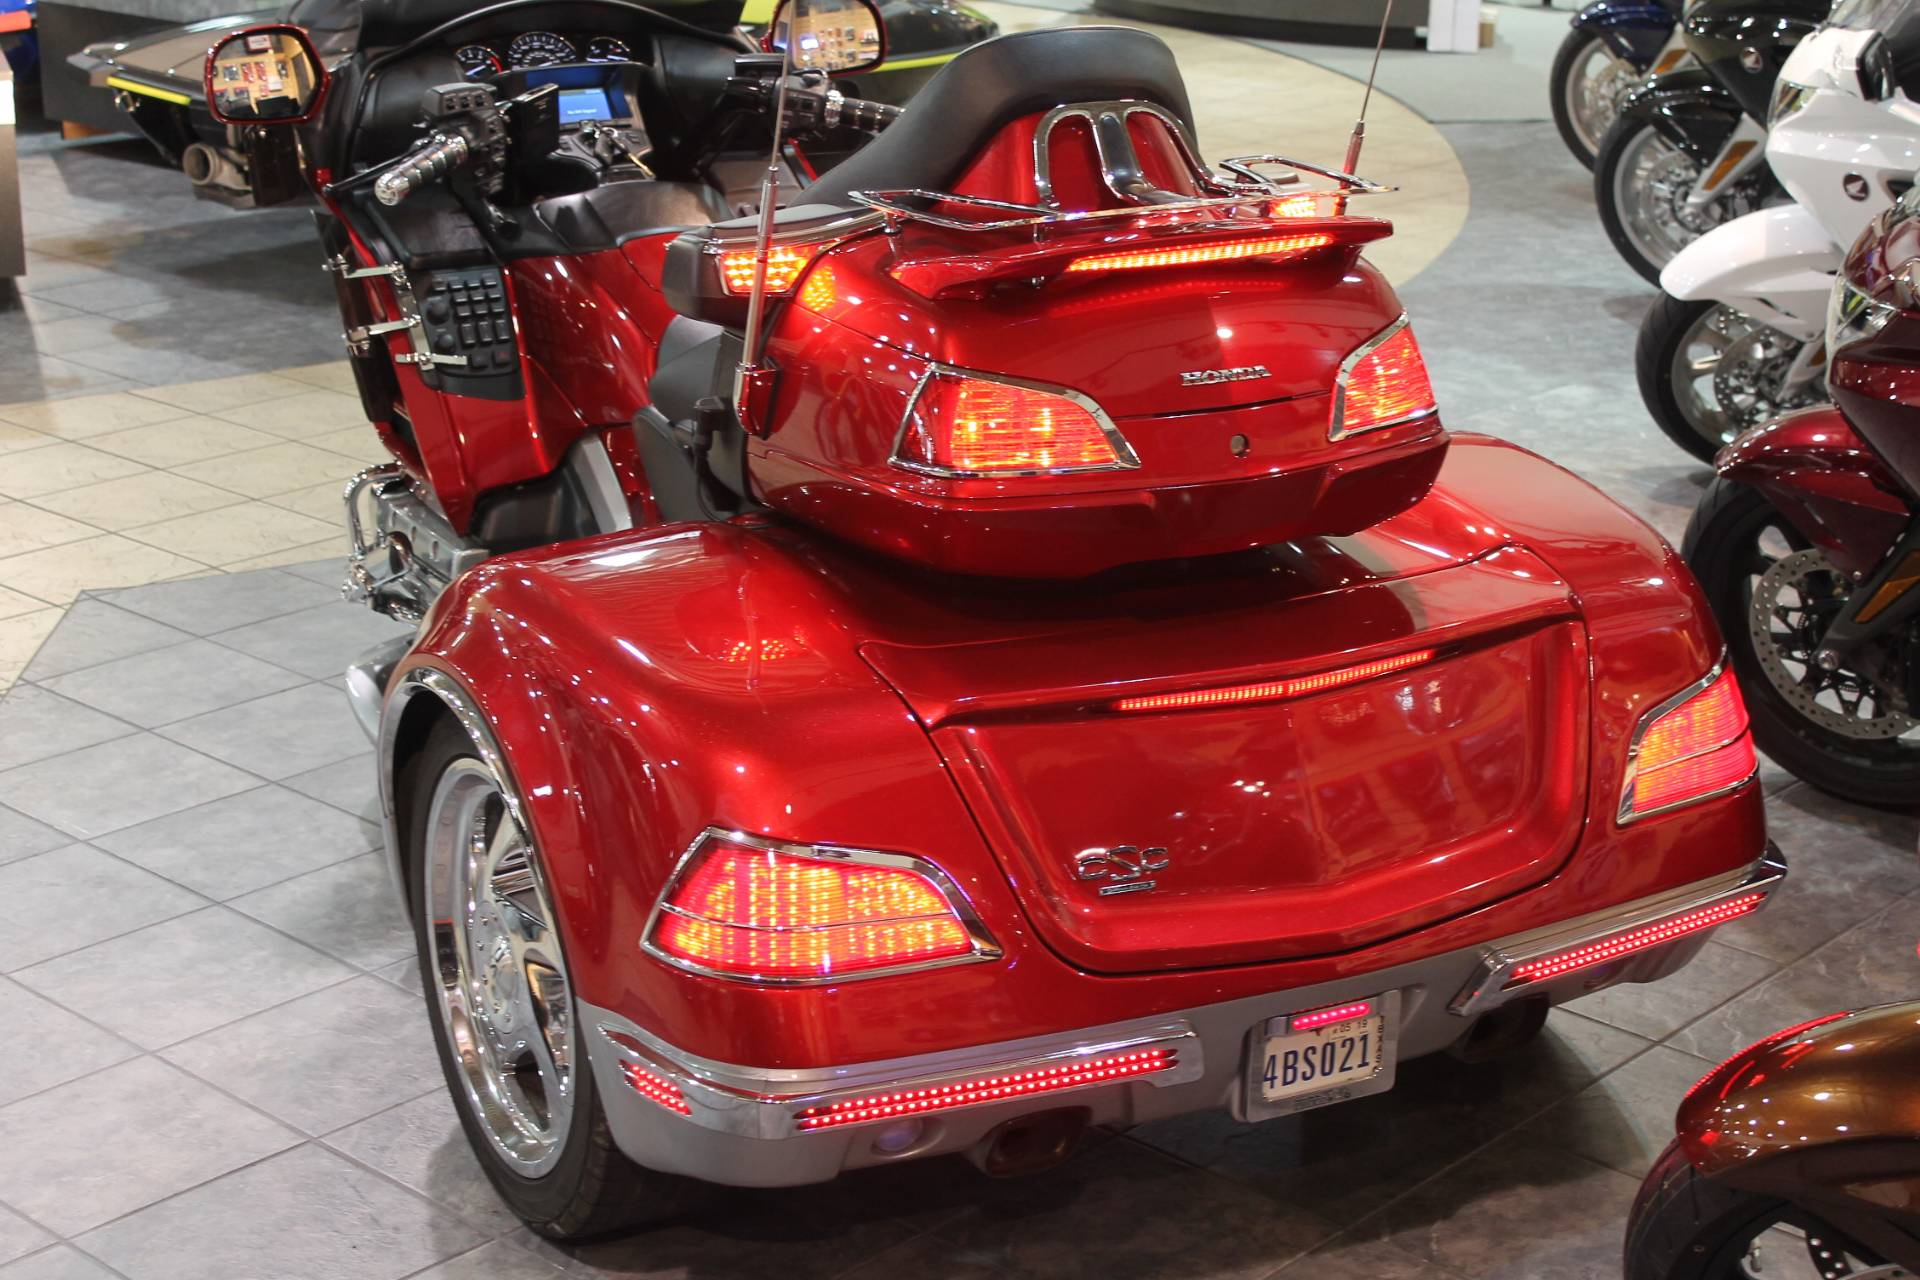 2014 Honda GL1800 Goldwing California Side Car Viper 3